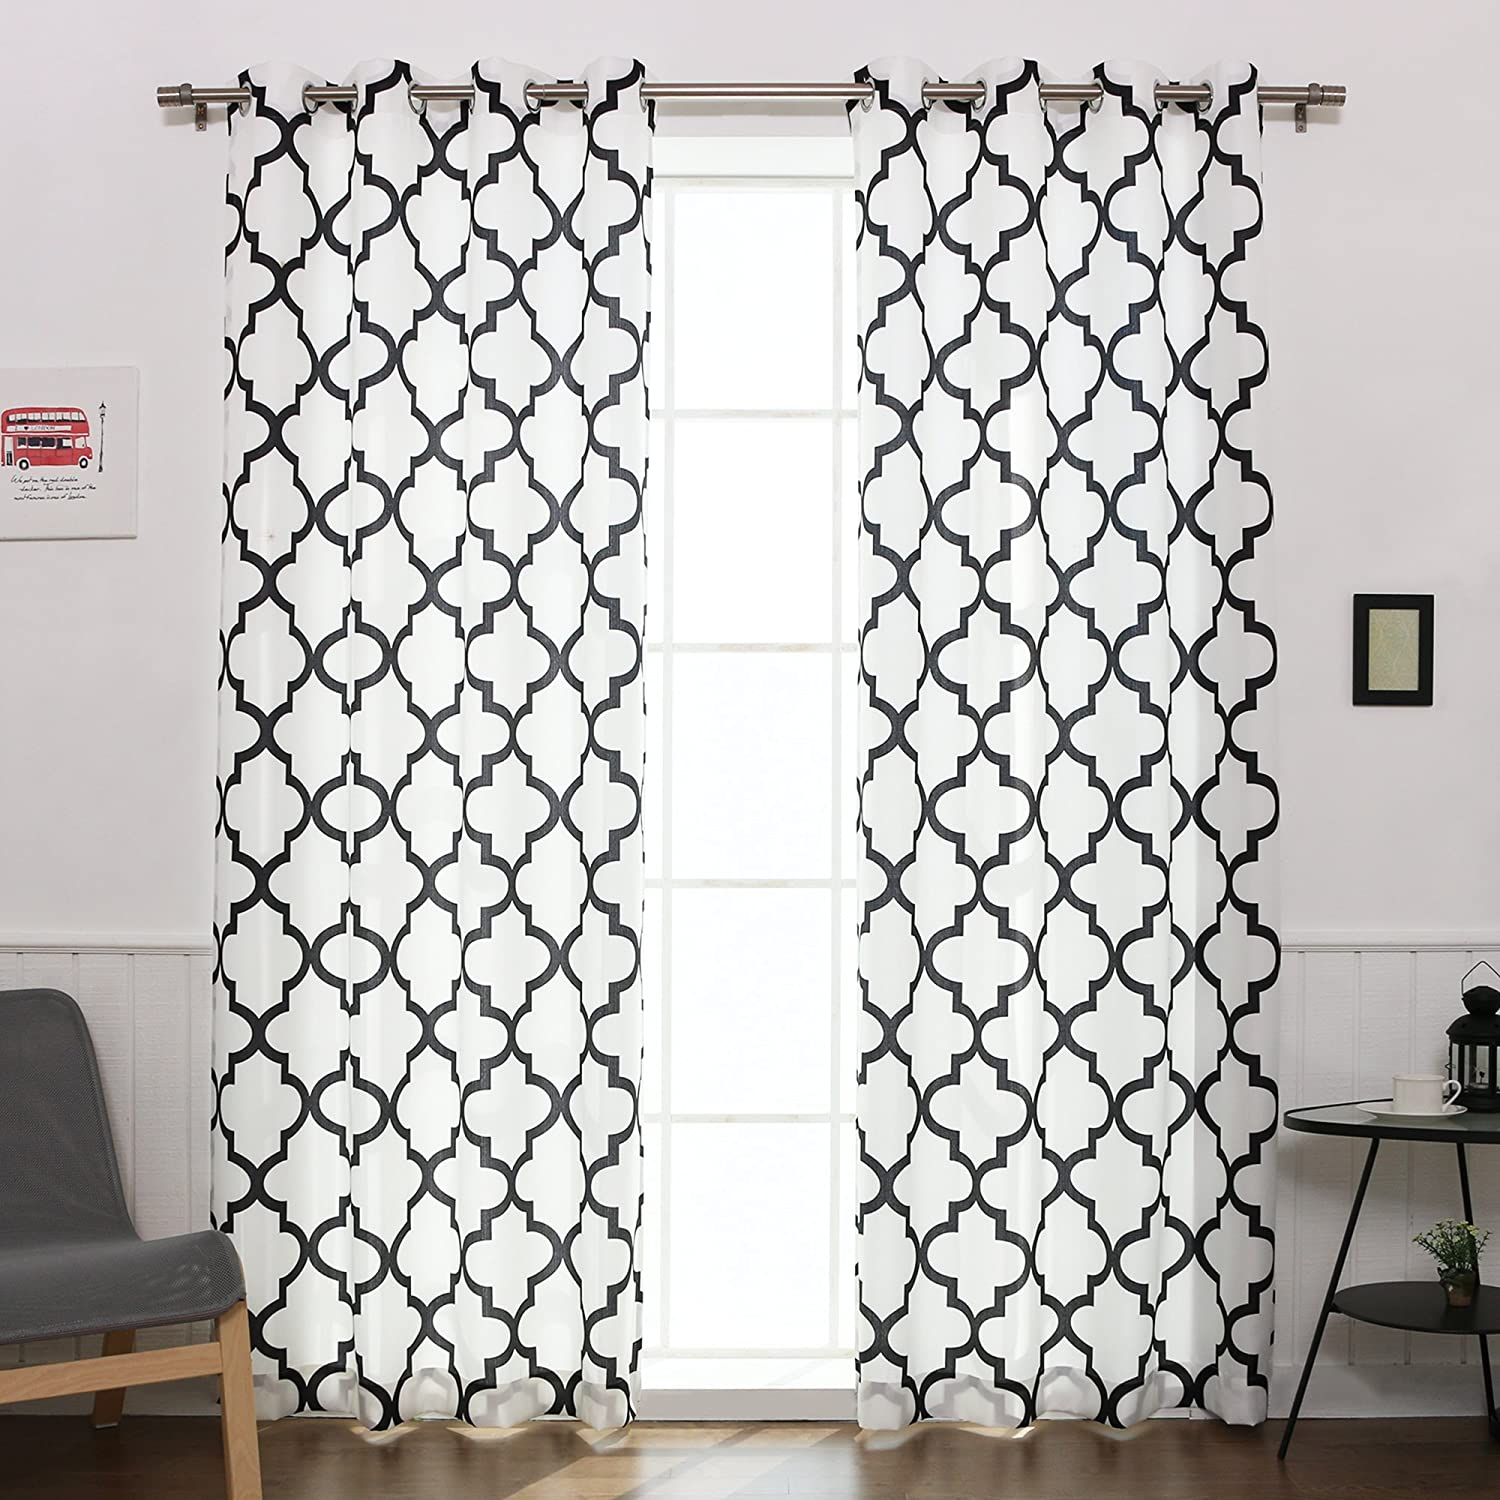 Oxford Basketweave Reverse Moroccan Print Curtains – Stainless Steel Nickel Grommet Top – Black